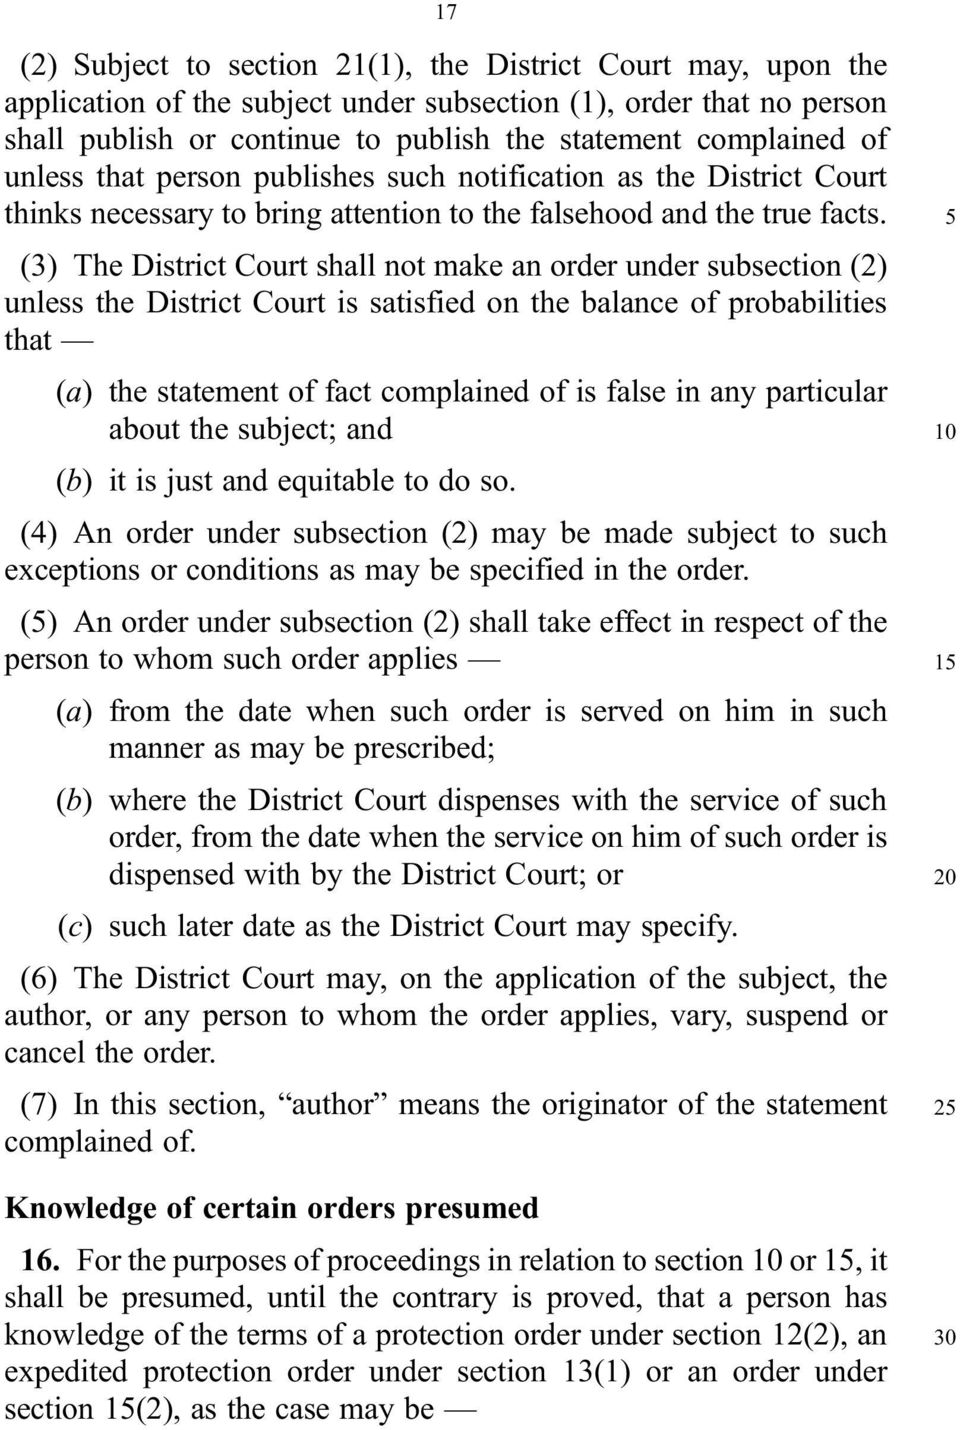 (3) The District Court shall not make an order under subsection (2) unless the District Court is satisfied on the balance of probabilities that (a) the statement of fact complained of is false in any